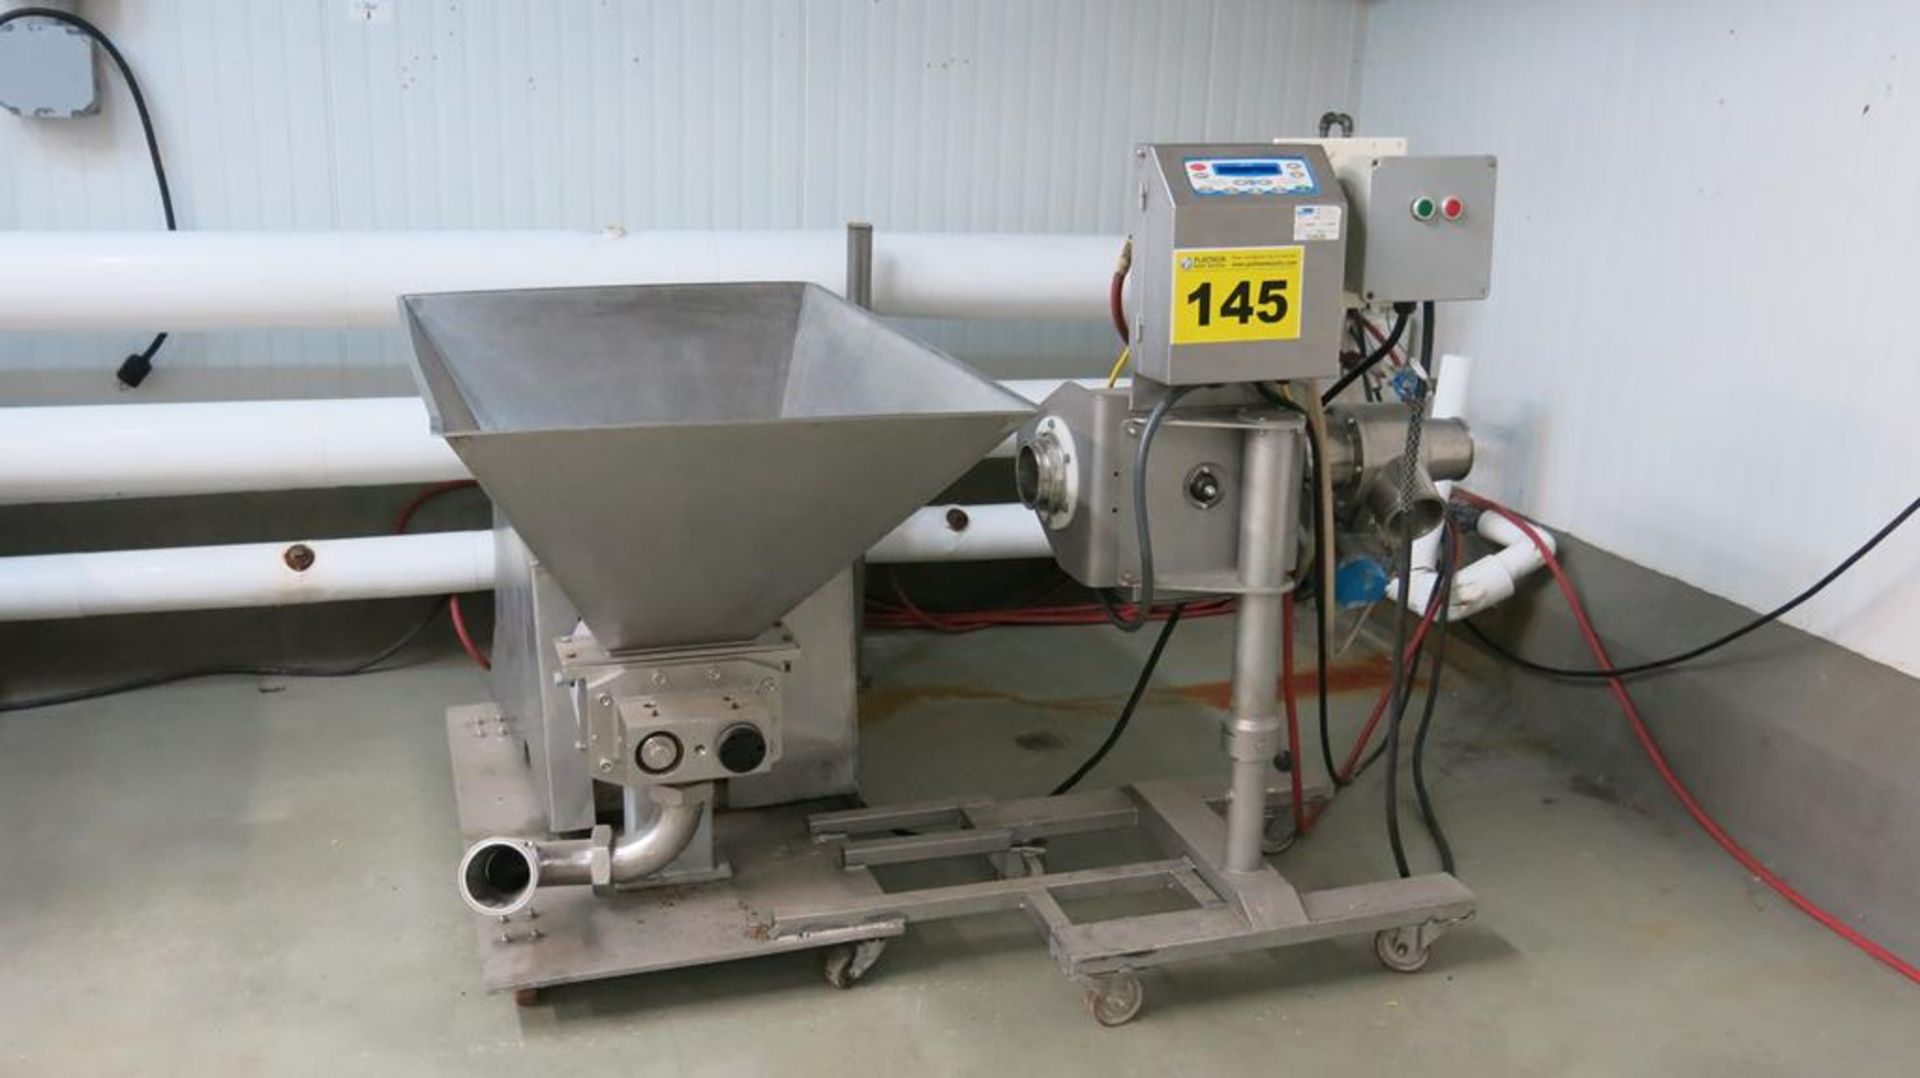 """Lot 145 - LOMA, IQ2, STAINLESS STEEL, PIPELINE, METAL DETECTOR, 4"""", S/N QP12033 WITH MEAT PUMP, 4.5"""" INLET /"""